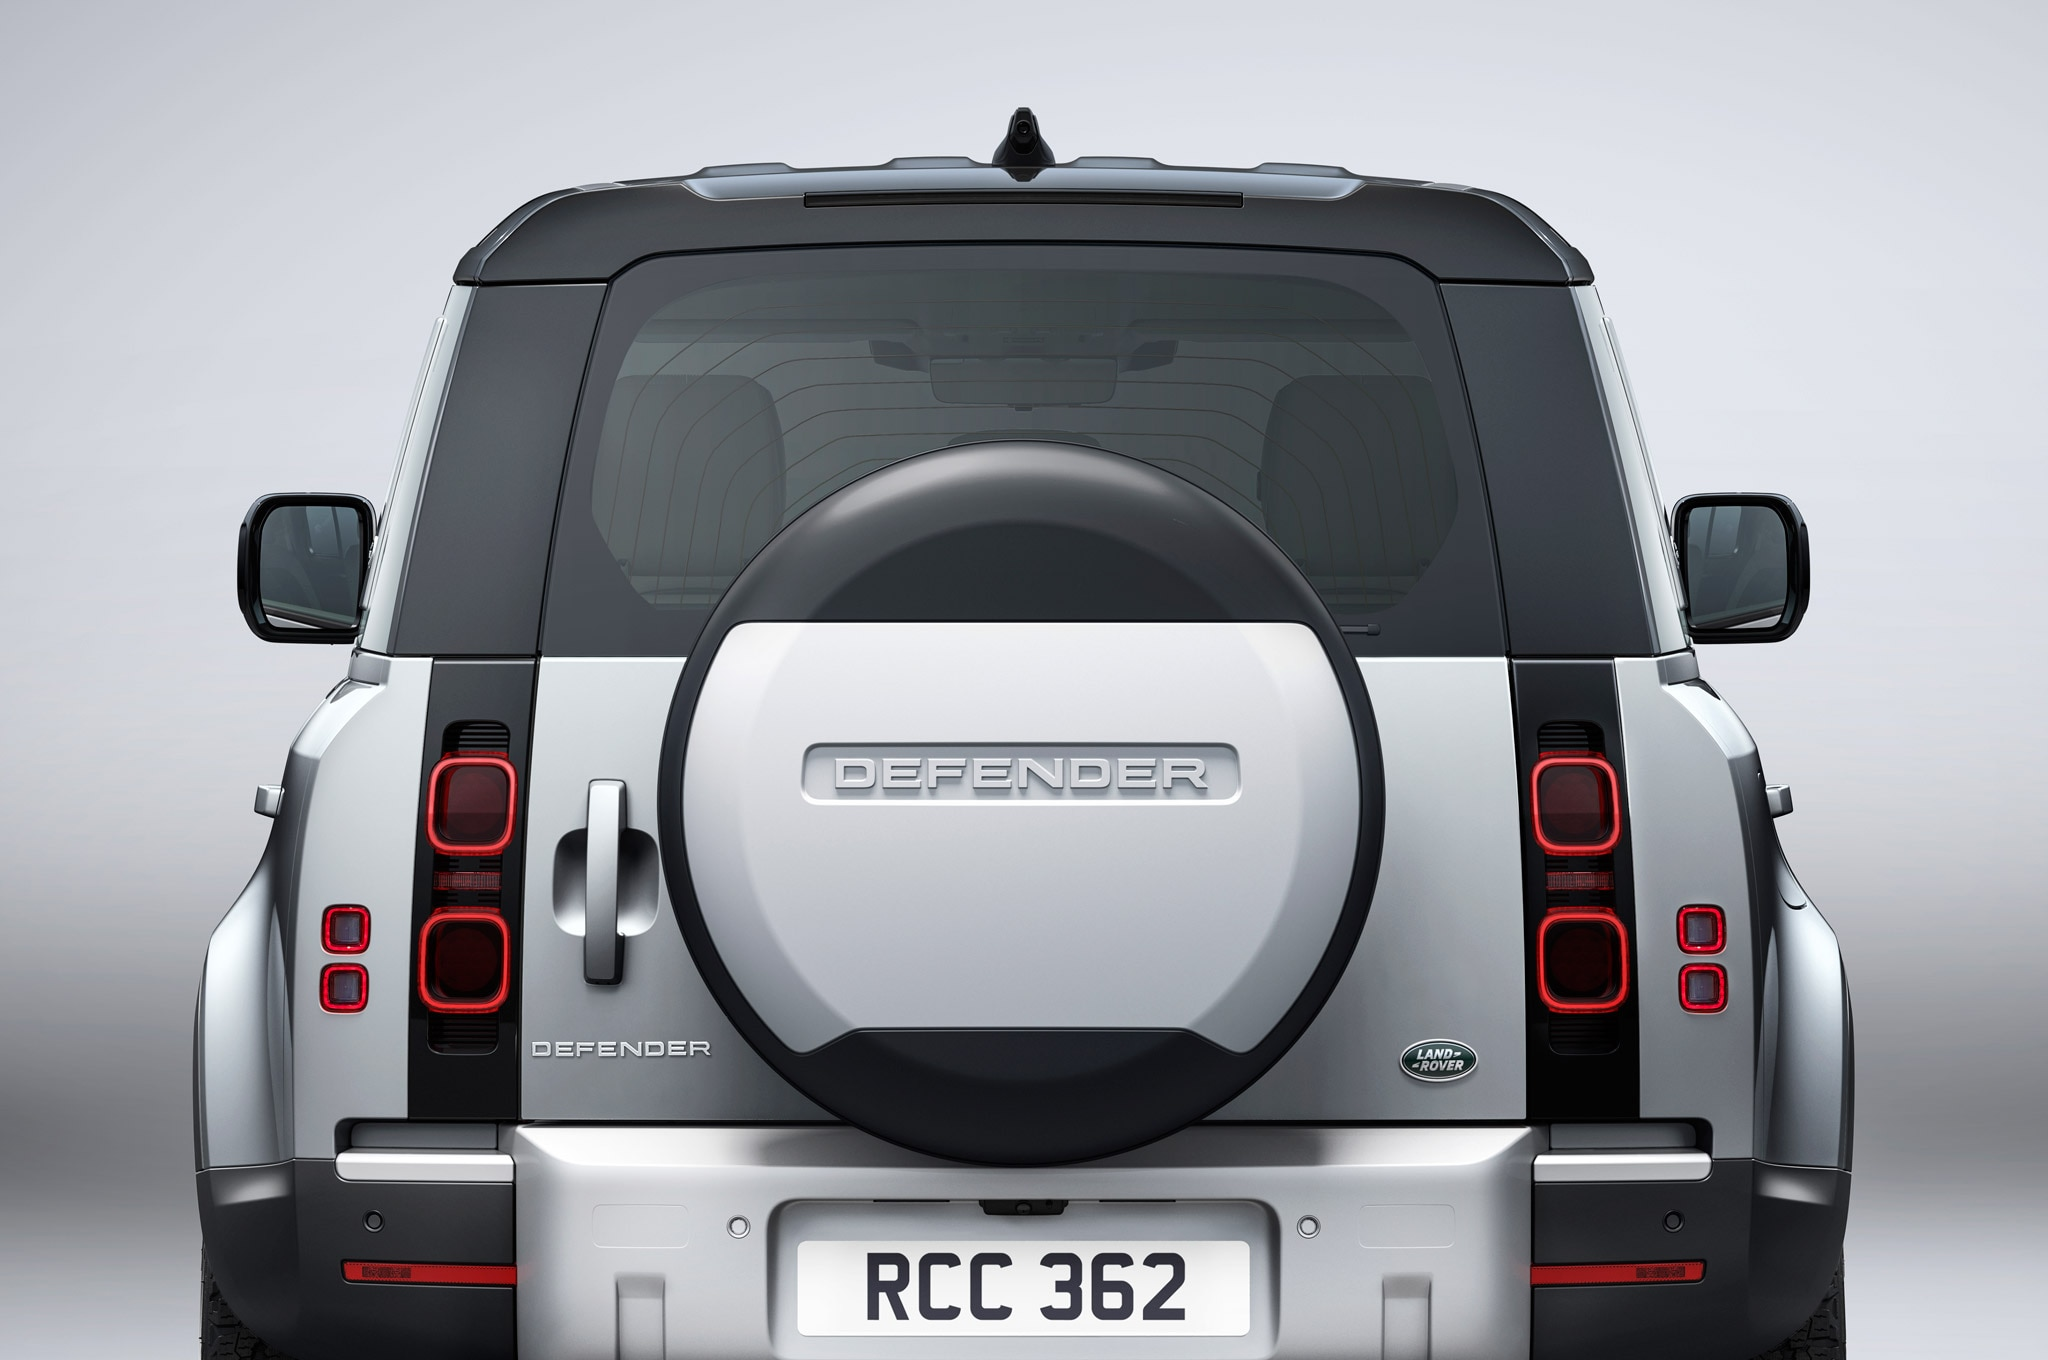 2020 land rover defender 110 exterior rear view